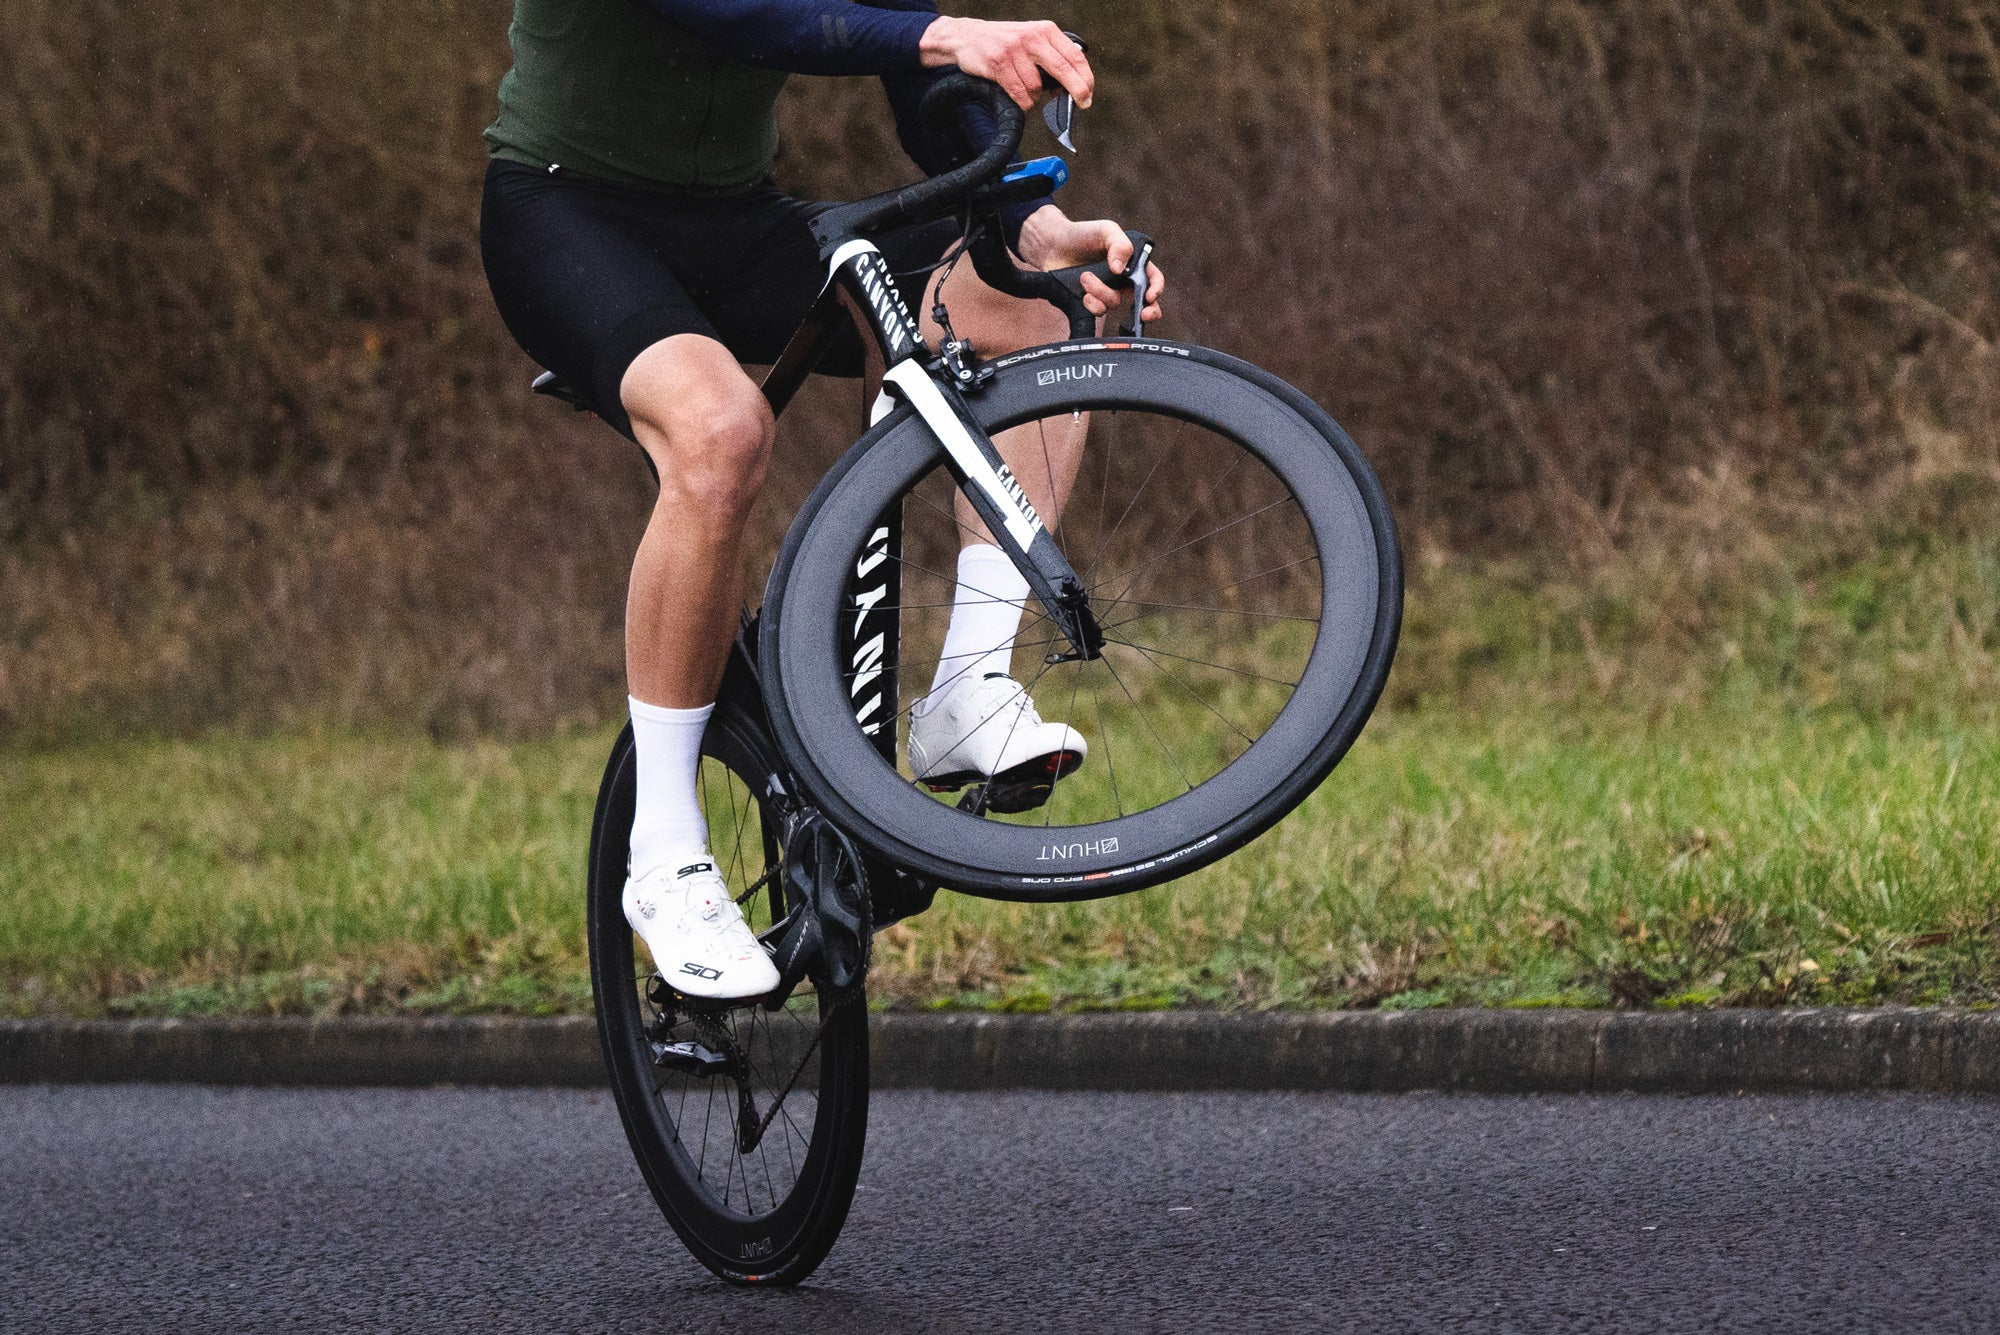 <h1>Weight</h1><i>The consequence of the fanatical attention to detail is an outstandingly light 1637g (62/62) wheelset weight in a lightning fast stiff aero package. We've enjoyed free wheeling in the pack whilst all others are pedalling, is it cheating?</i>